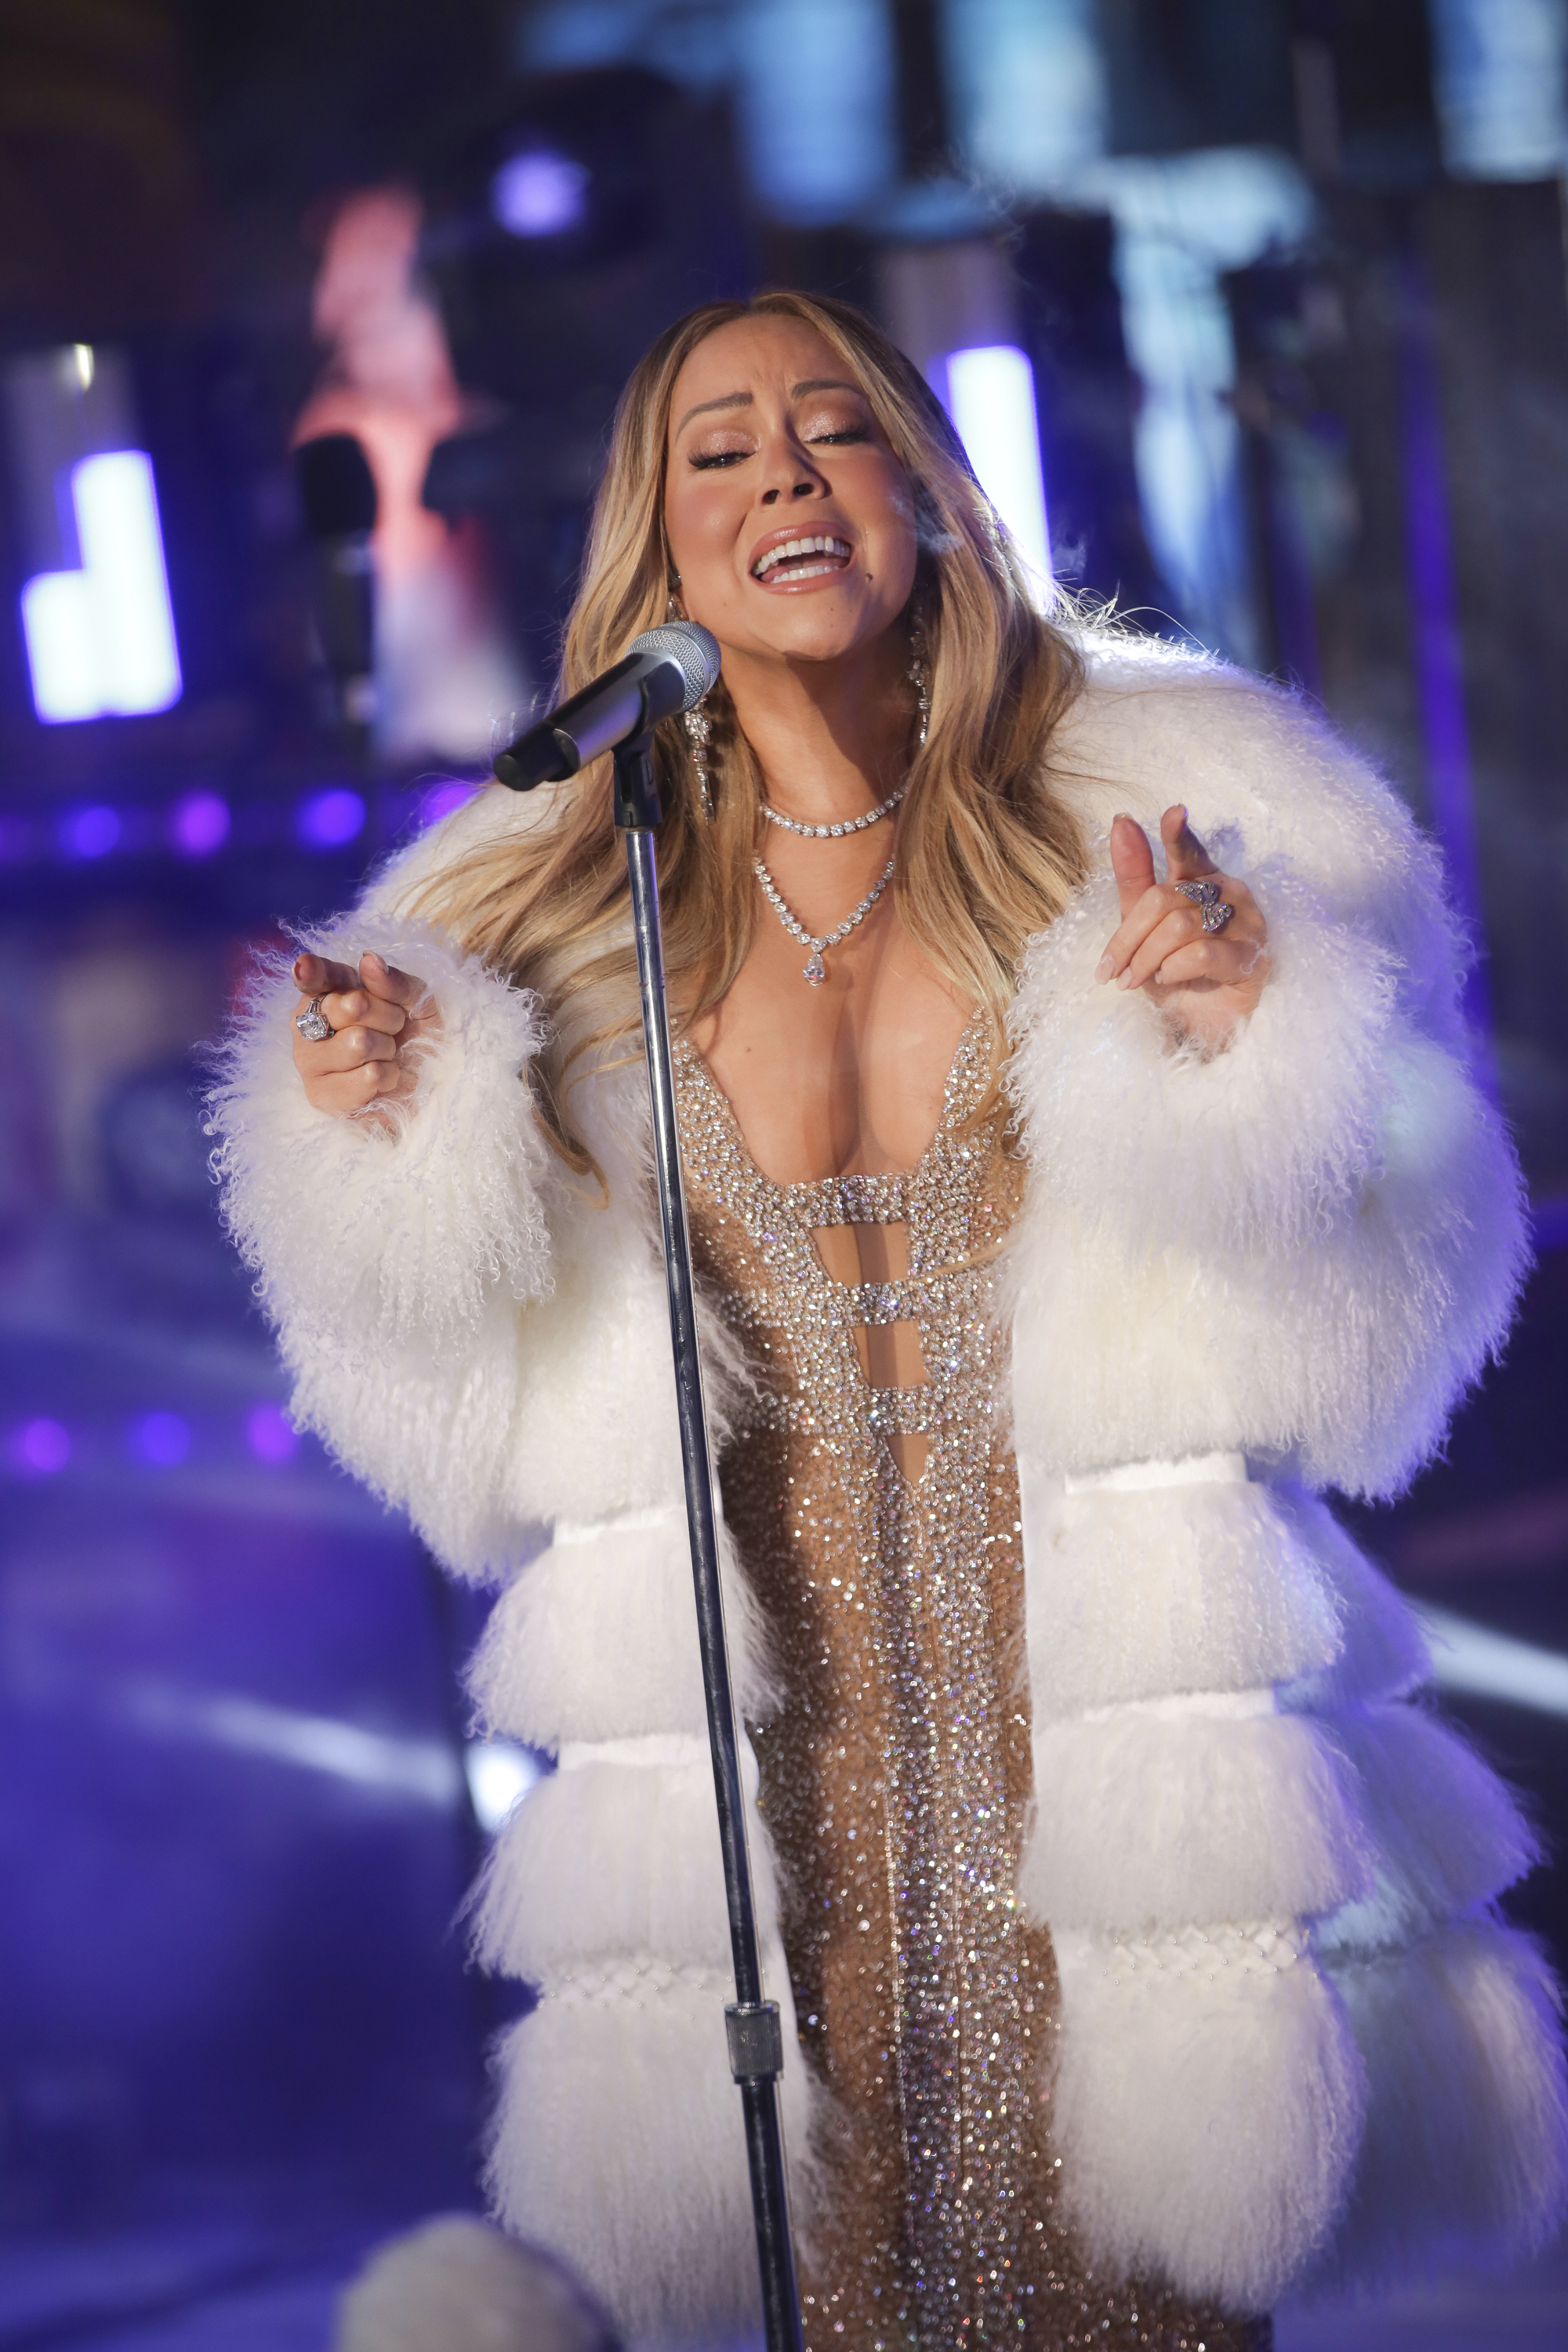 <div class='meta'><div class='origin-logo' data-origin='AP'></div><span class='caption-text' data-credit='Brent N. Clarke/Invision/AP'>Mariah Carey performs on stage at the New Year's Eve celebration in Times Square on Sunday, Dec. 31, 2017, in New York. (Photo by Brent N. Clarke/Invision/AP)</span></div>